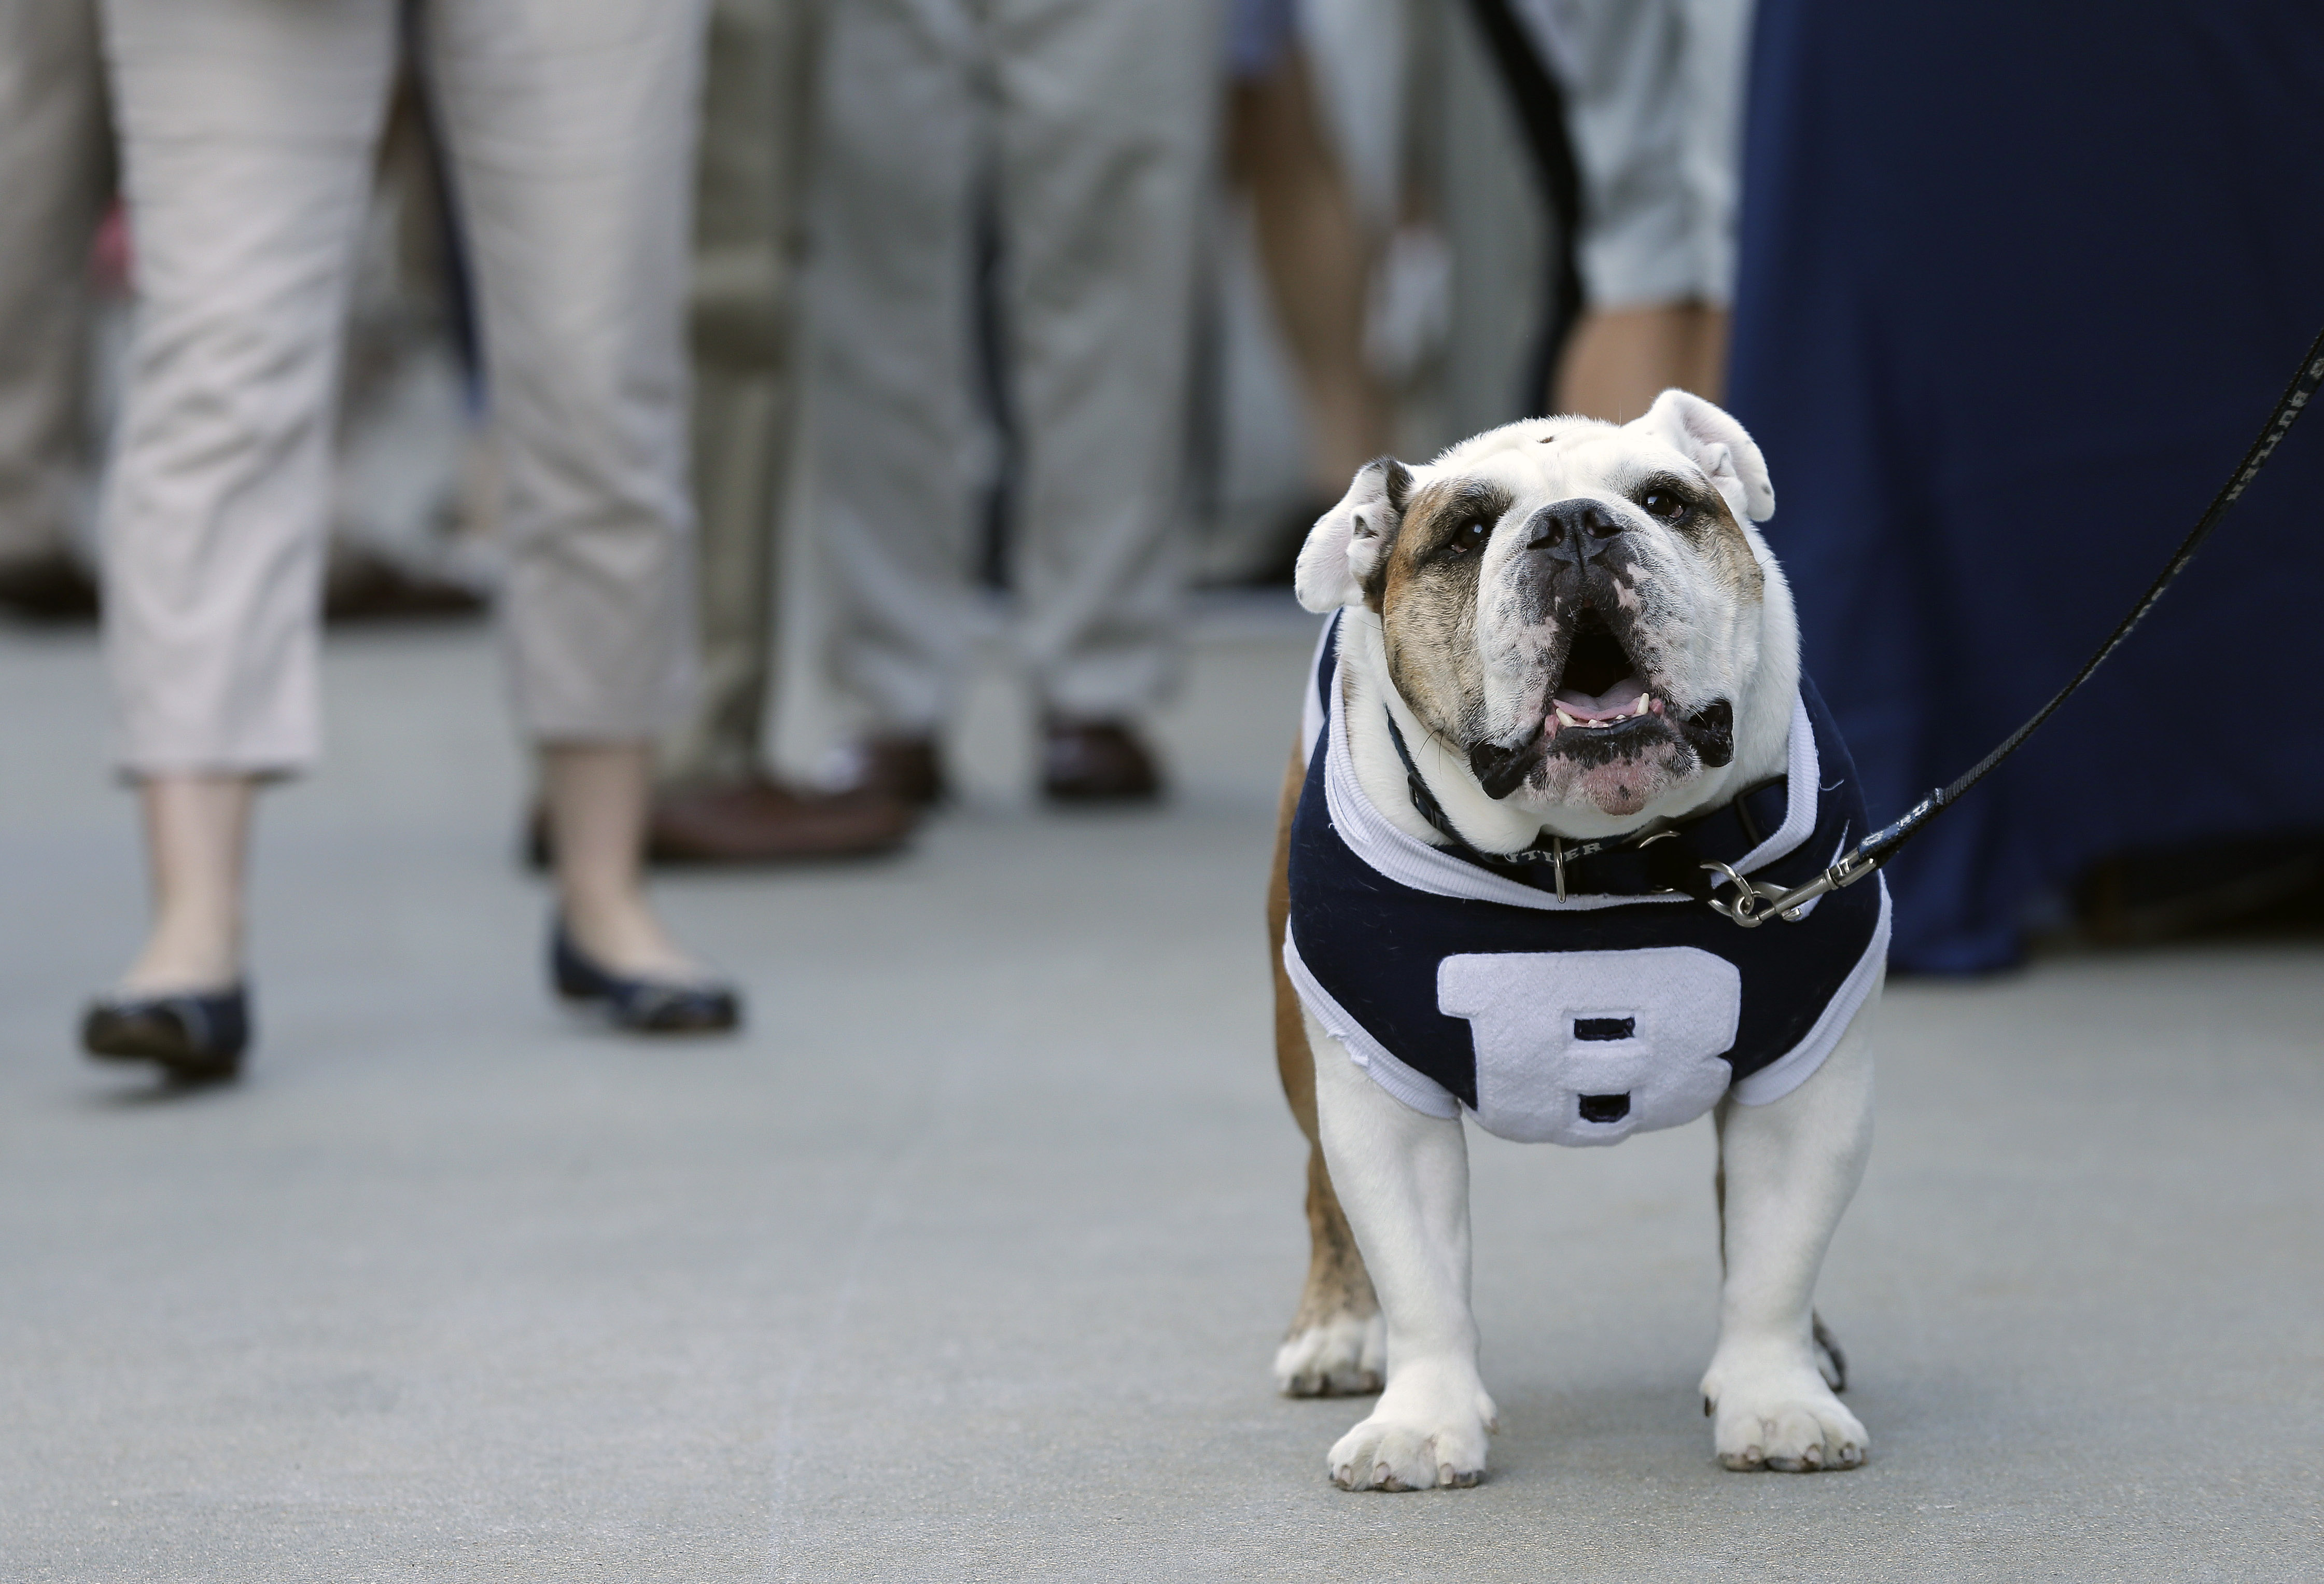 """The Butler mascot """"Butler Blue III"""" sits outside the PNC Arena during a fan pregame tailgate event ahead of a first-round men's college basketball game in the NCAA Tournament between Butler and Texas Tech, Thursday, March 17, 2016, in Raleigh, N.C. NCAA r"""